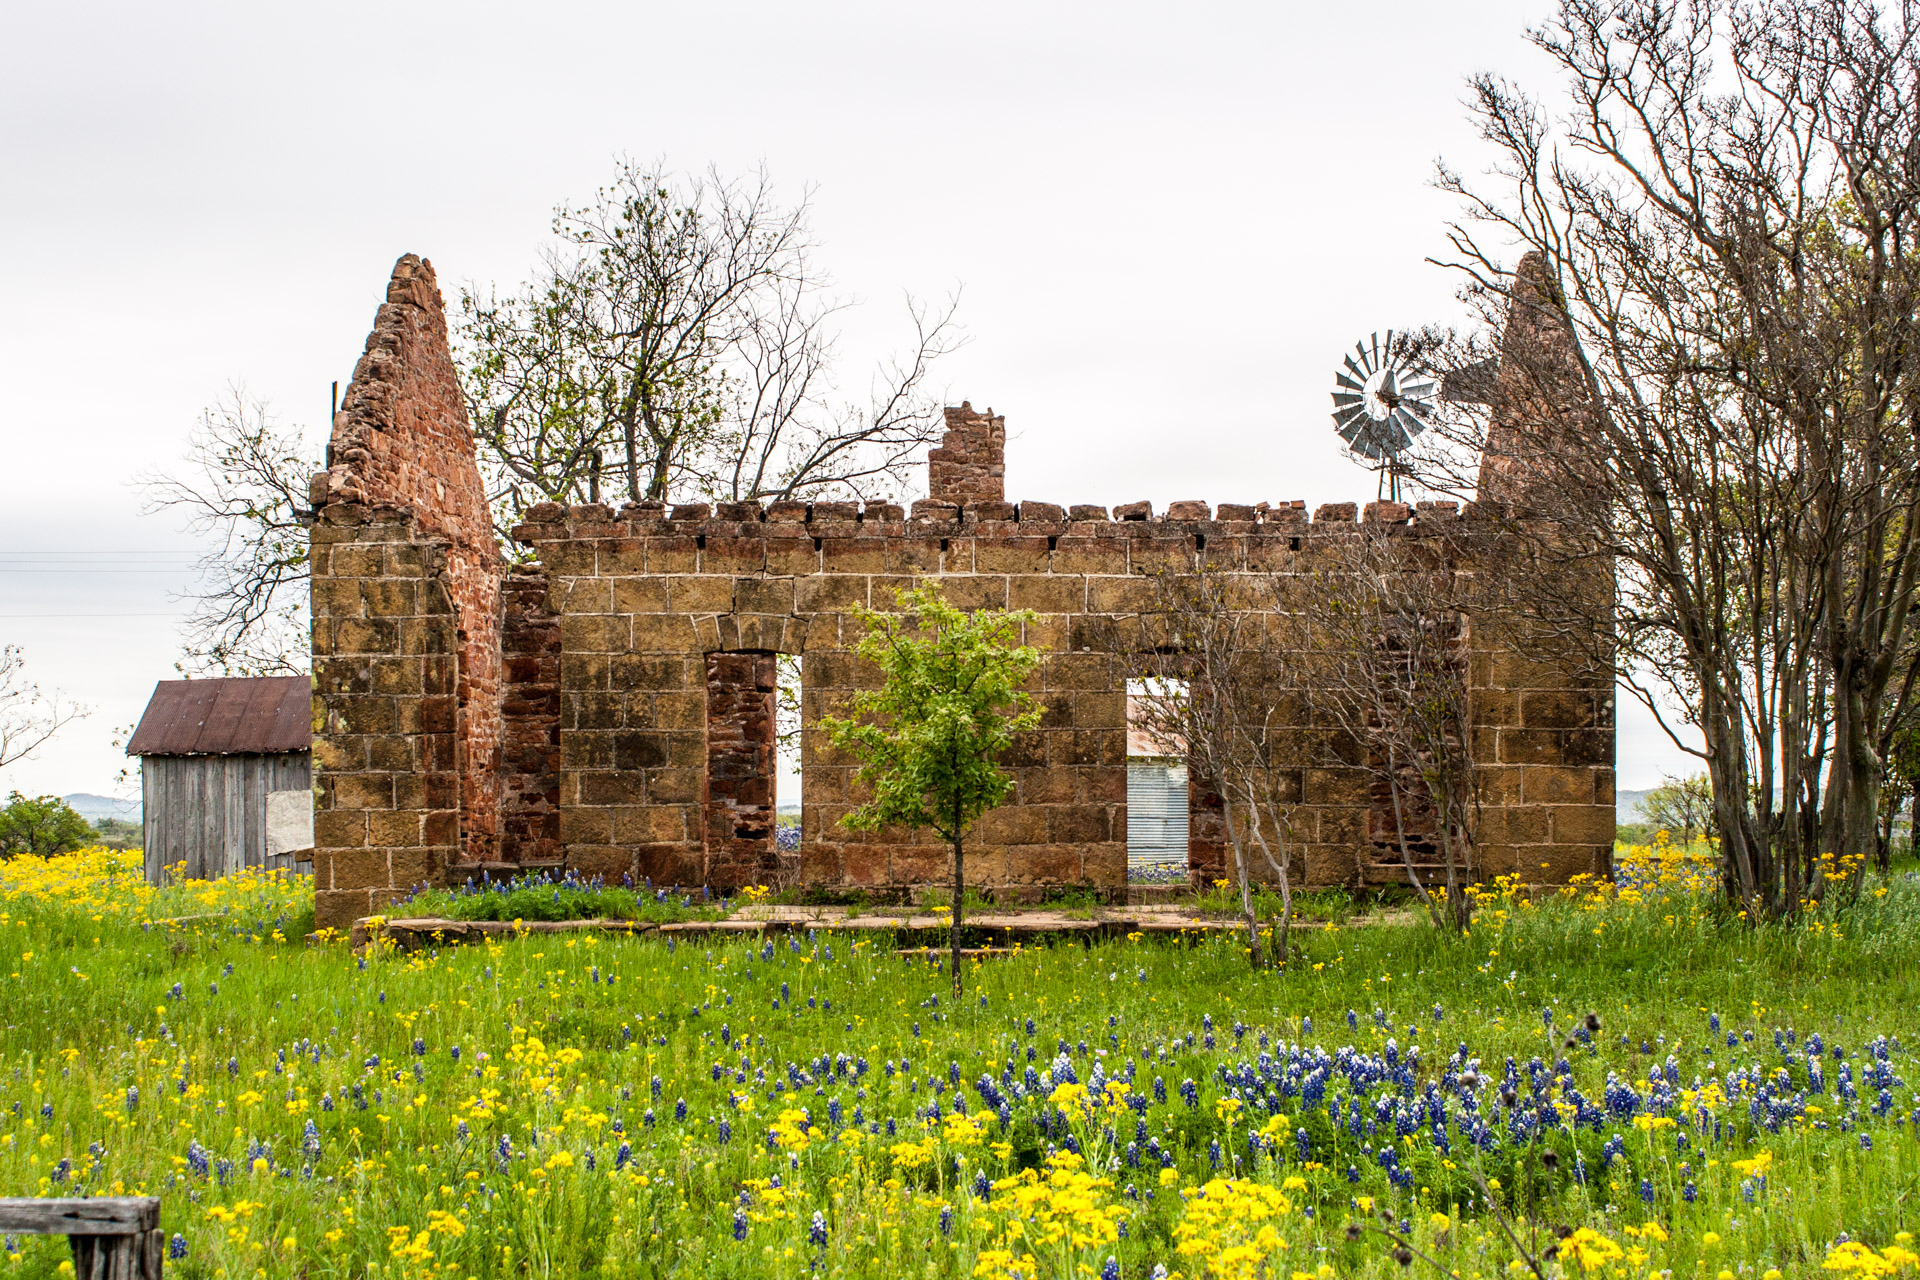 Pontotoc, Texas - A Stone Ruin With Bluebonnets (side mid)